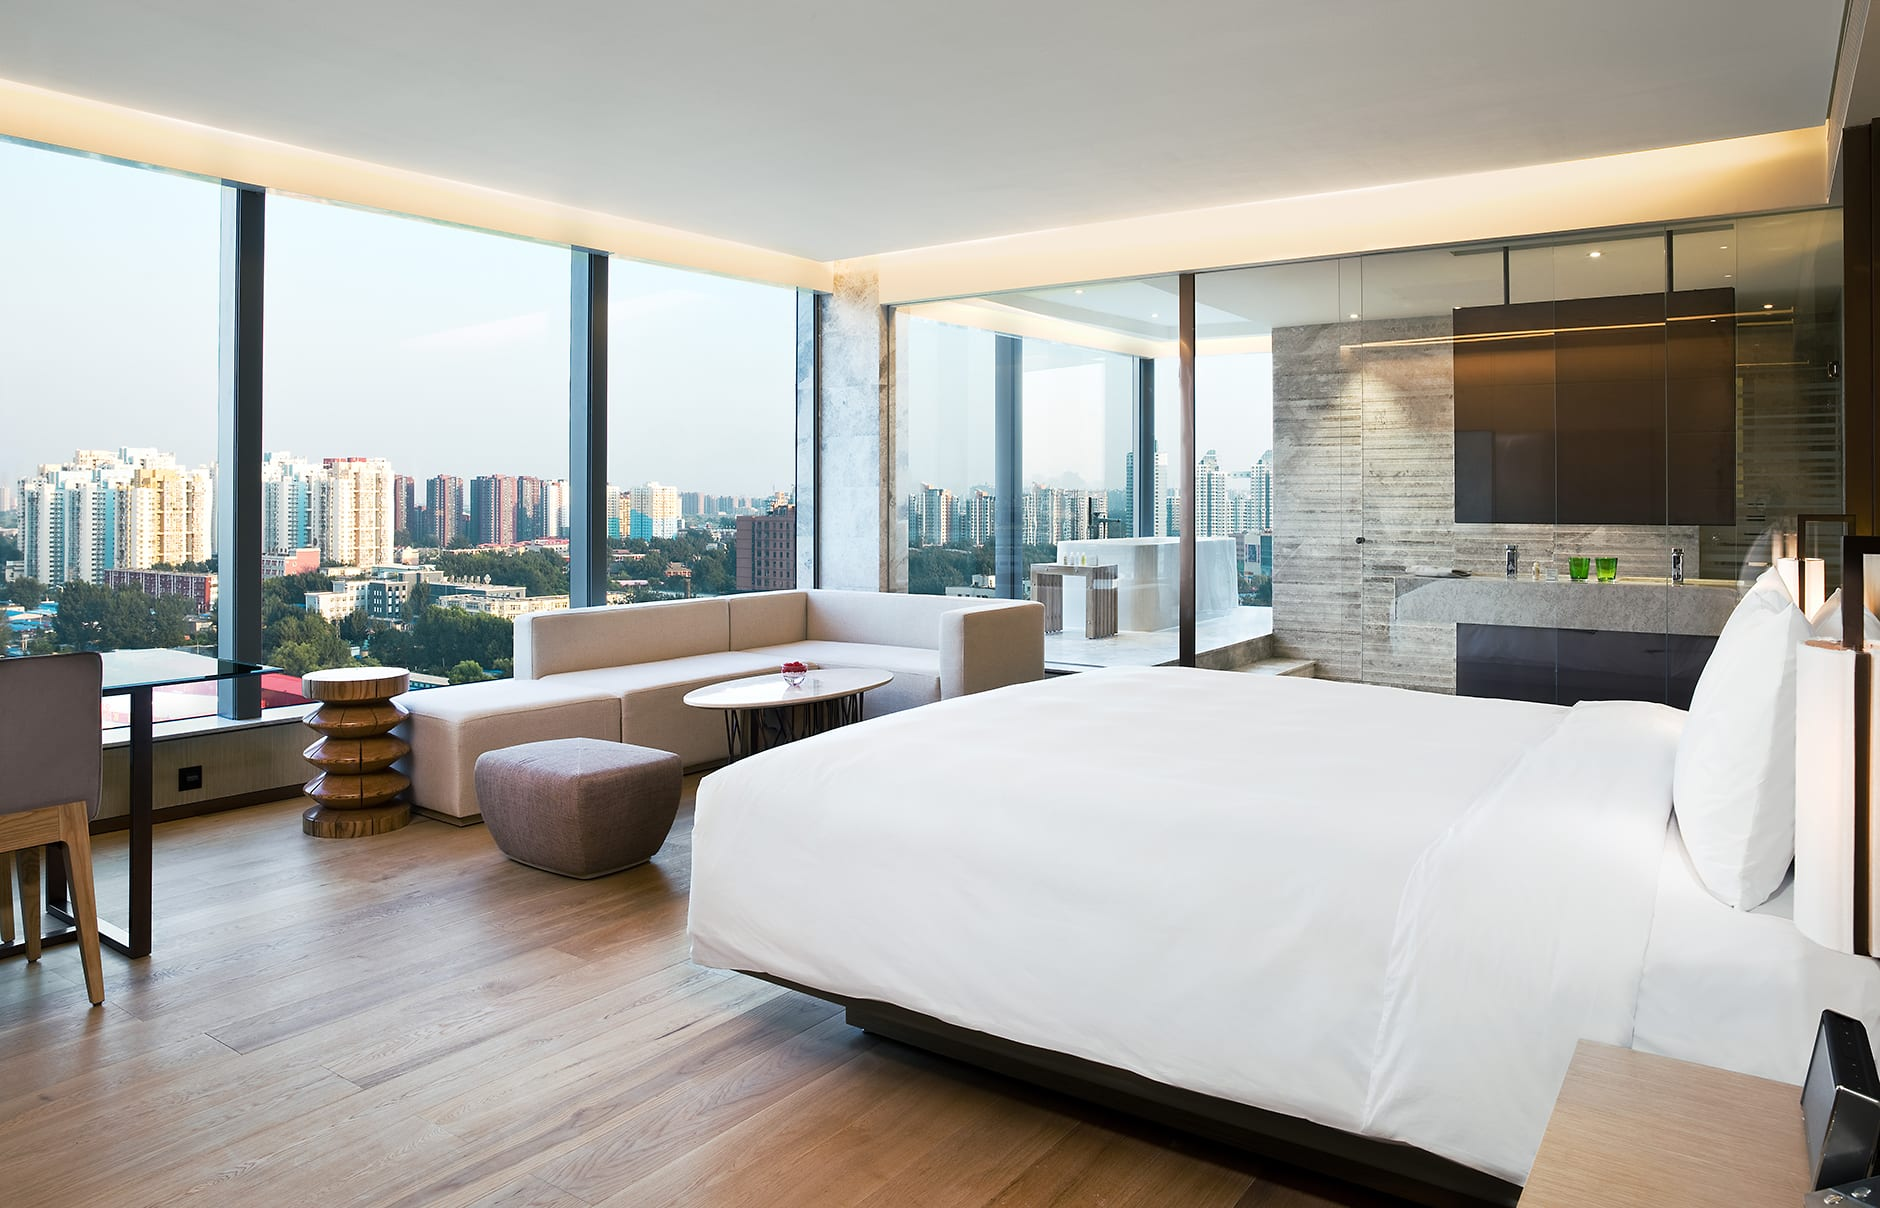 Park Studio suite. EAST Beijing, China. © Swire Hotels